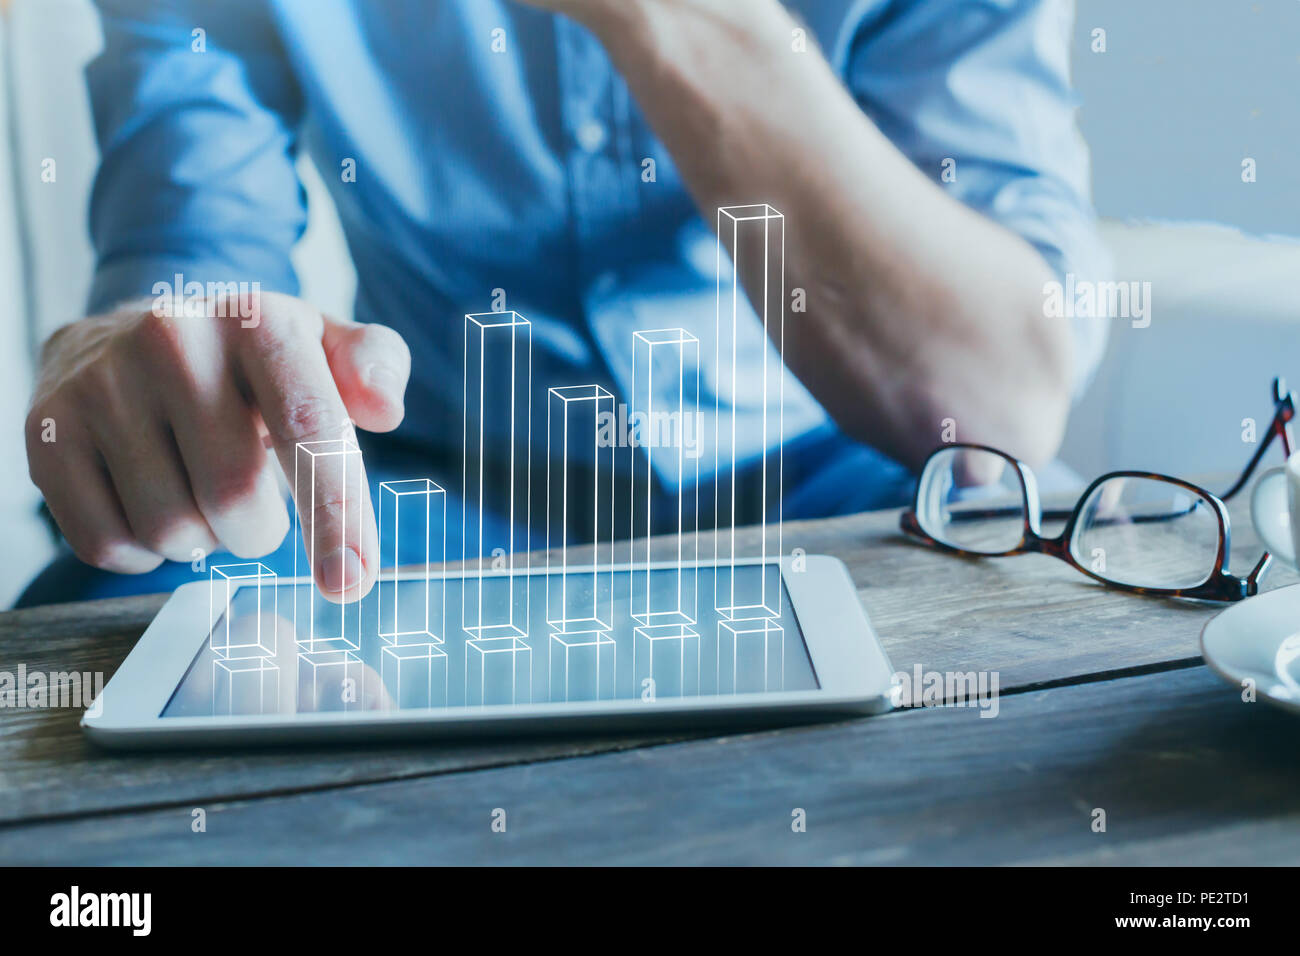 entrepreneur using digital technology for business start-up, 3d column chart - Stock Image